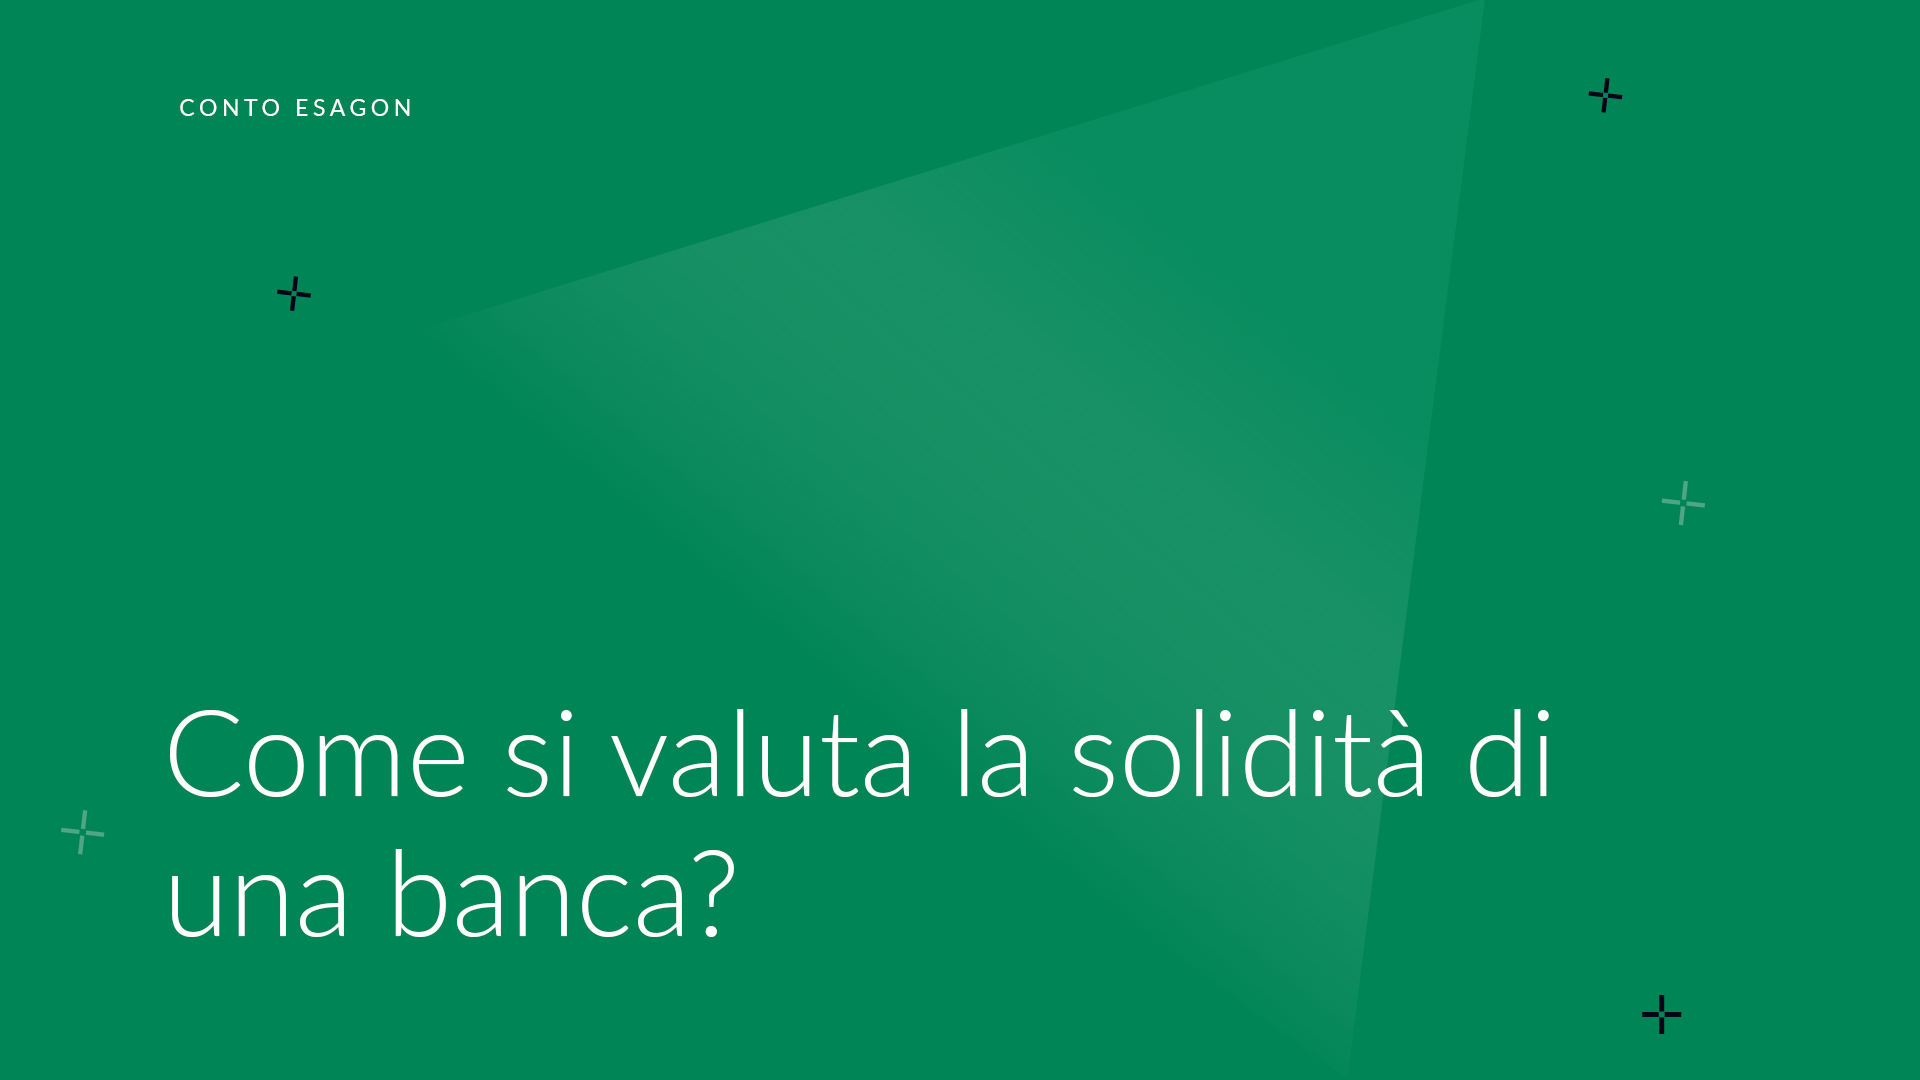 Come si valuta la solidità di una banca?